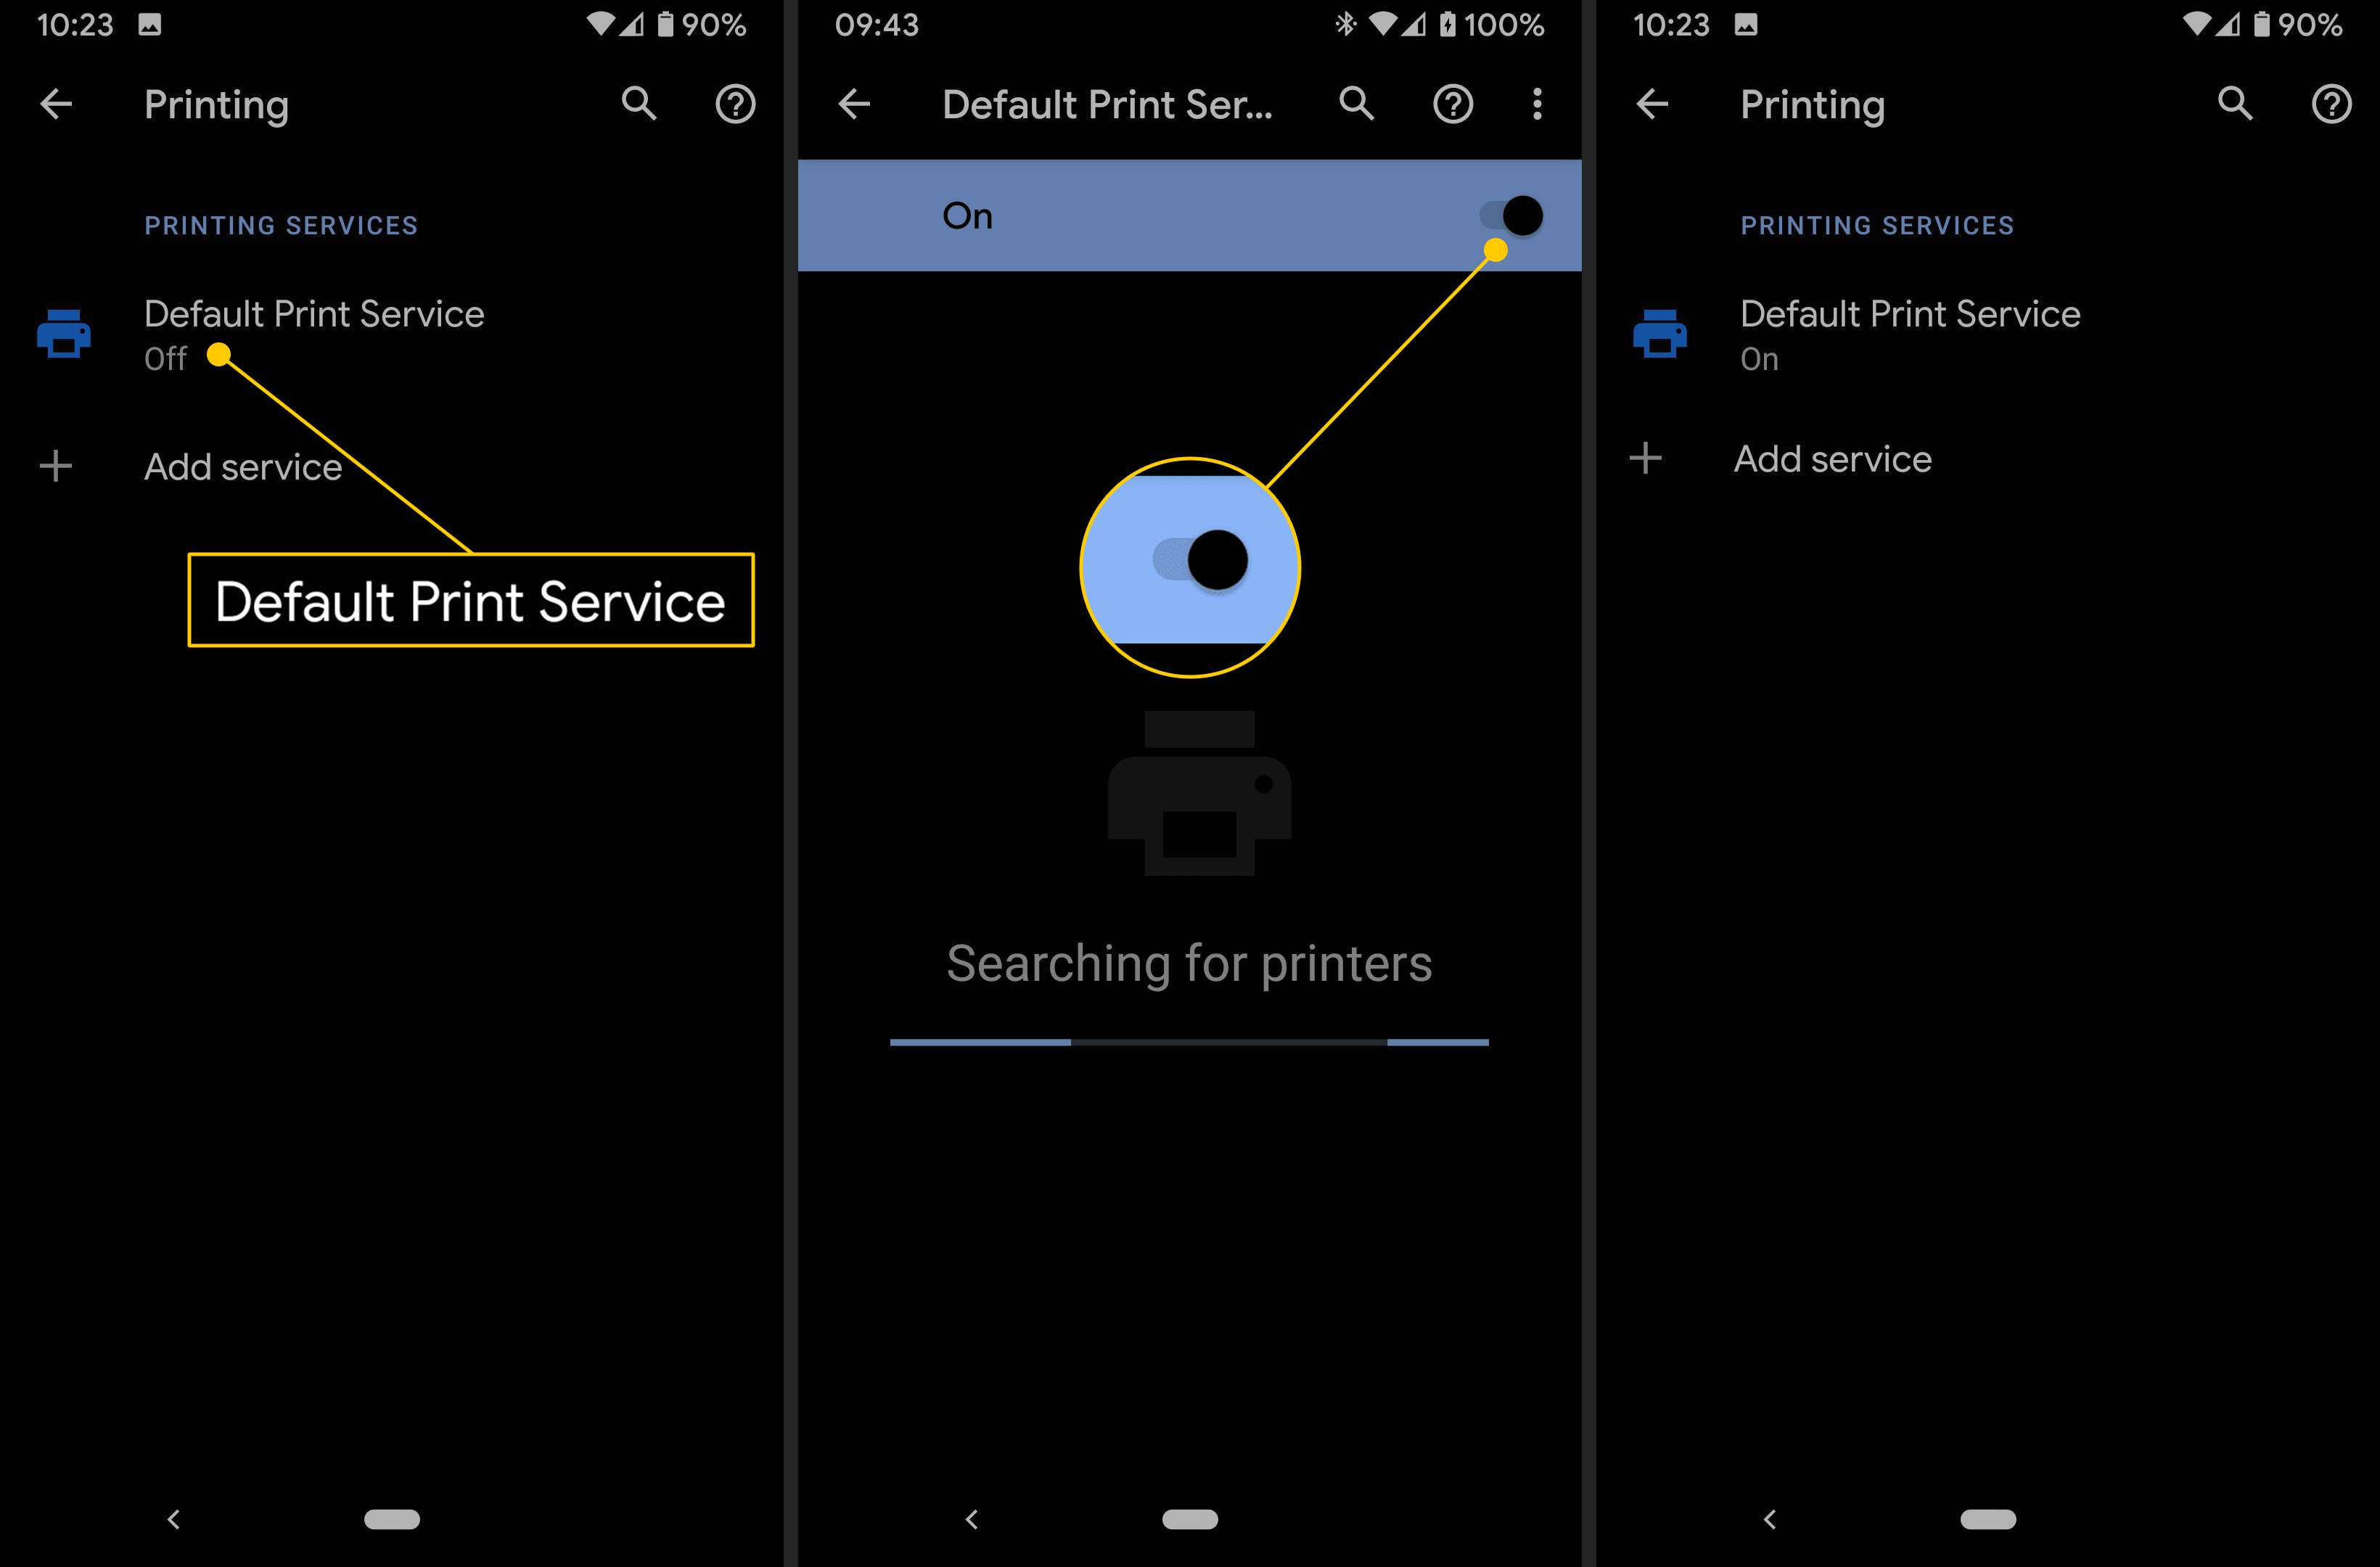 Default Print Service, On toggle, on Android